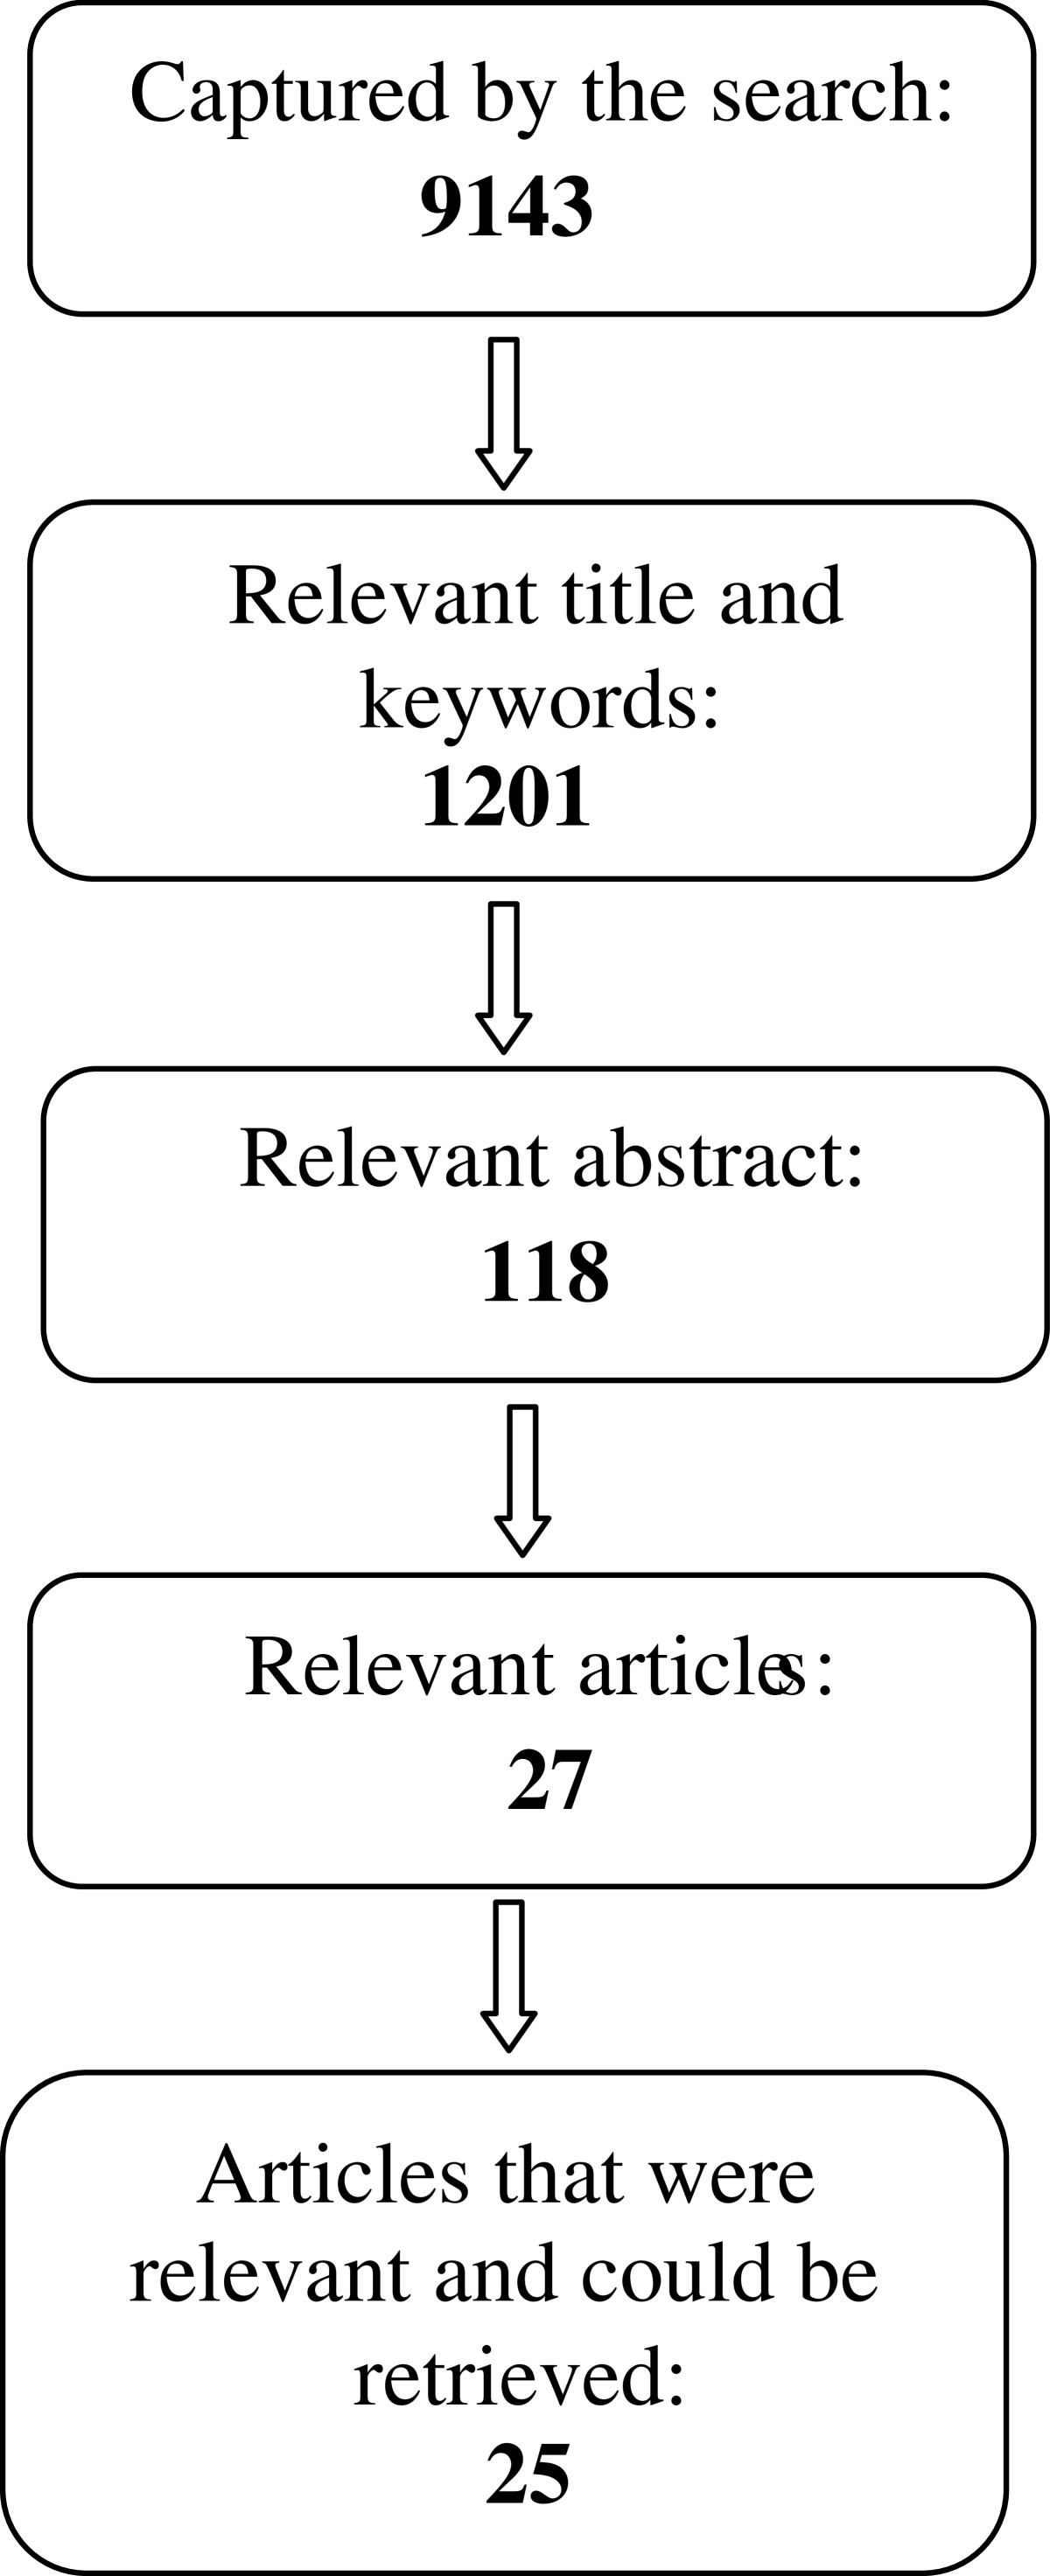 https://static-content.springer.com/image/art%3A10.1186%2F2047-2382-3-4/MediaObjects/13750_2013_Article_37_Fig1_HTML.jpg